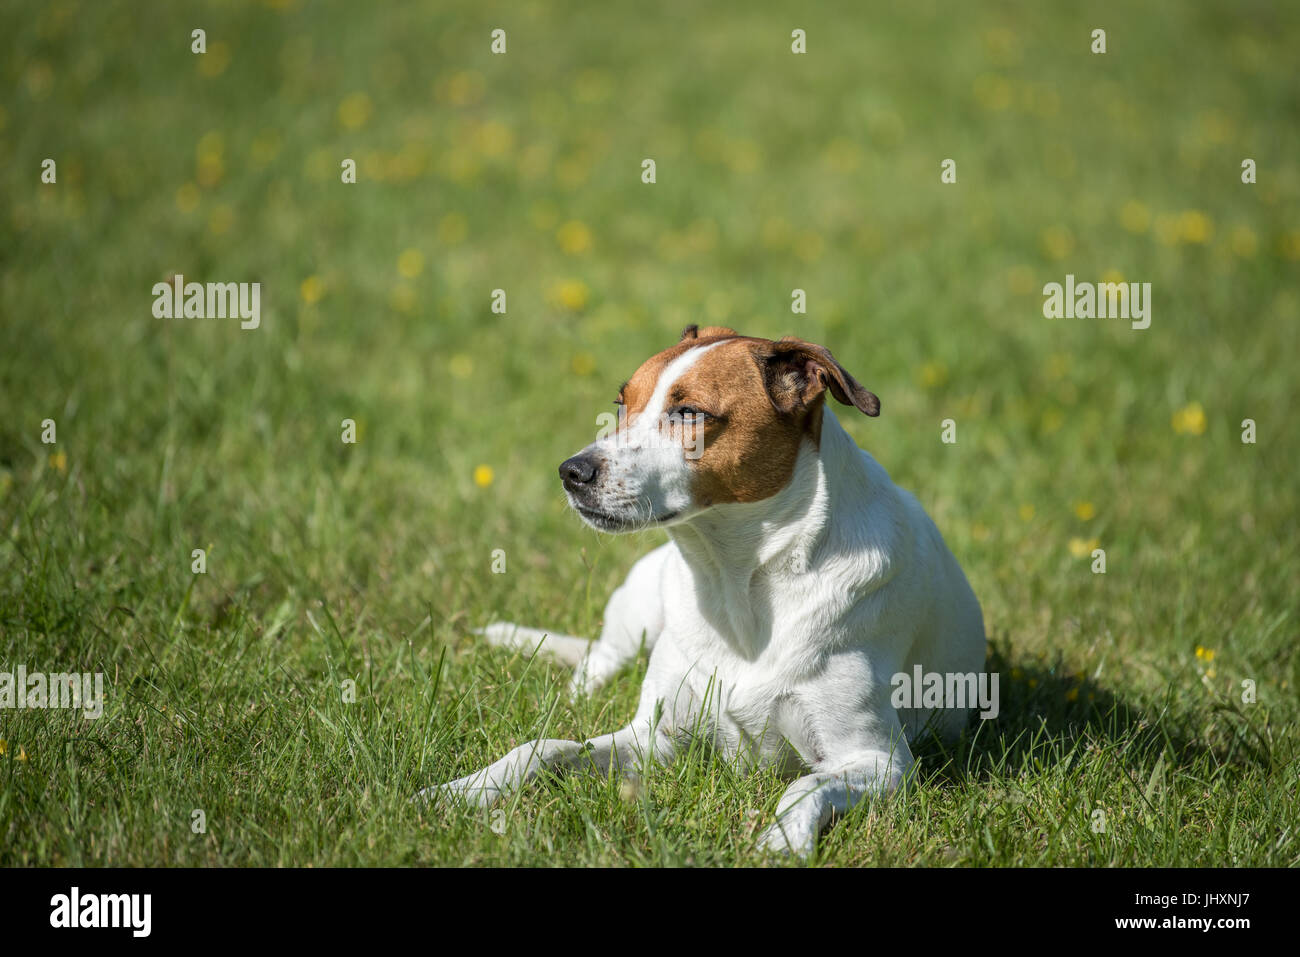 Danish Swedish Farmdog resting on a lawn. This breed, which originates from Denmark and southern Sweden is lively - Stock Image